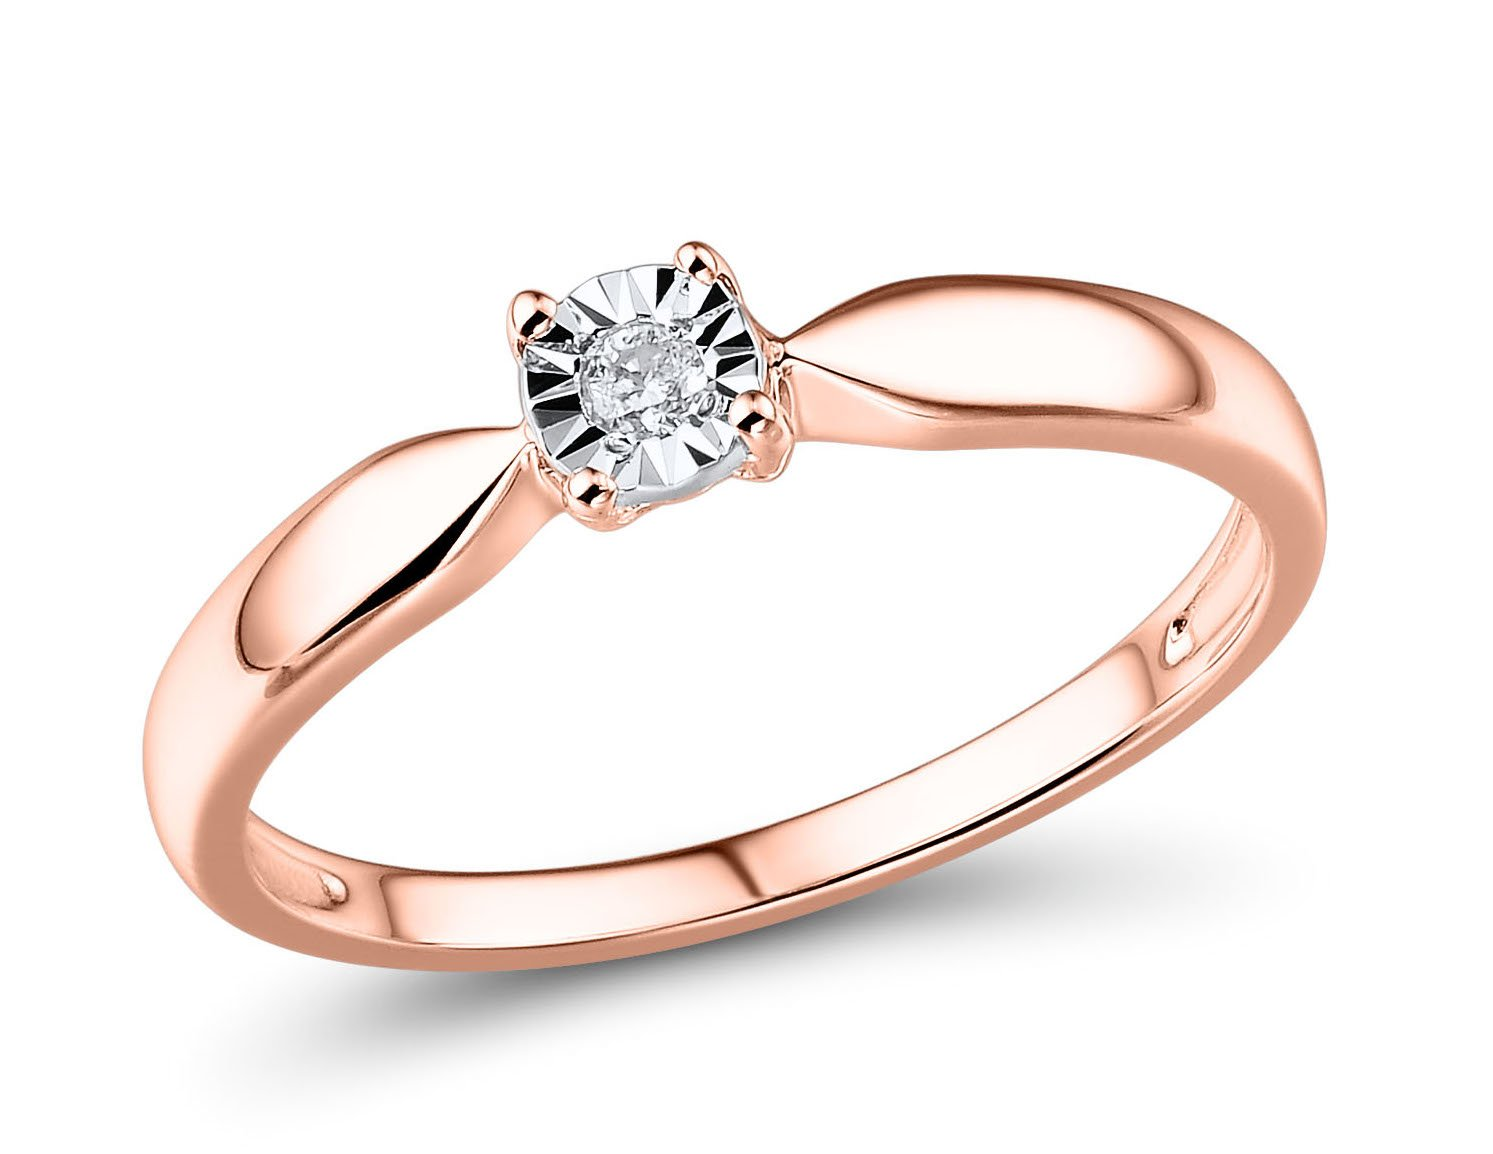 Diamond Promise Ring in 10k Rose Gold and Rhodium Plated 10k White Gold